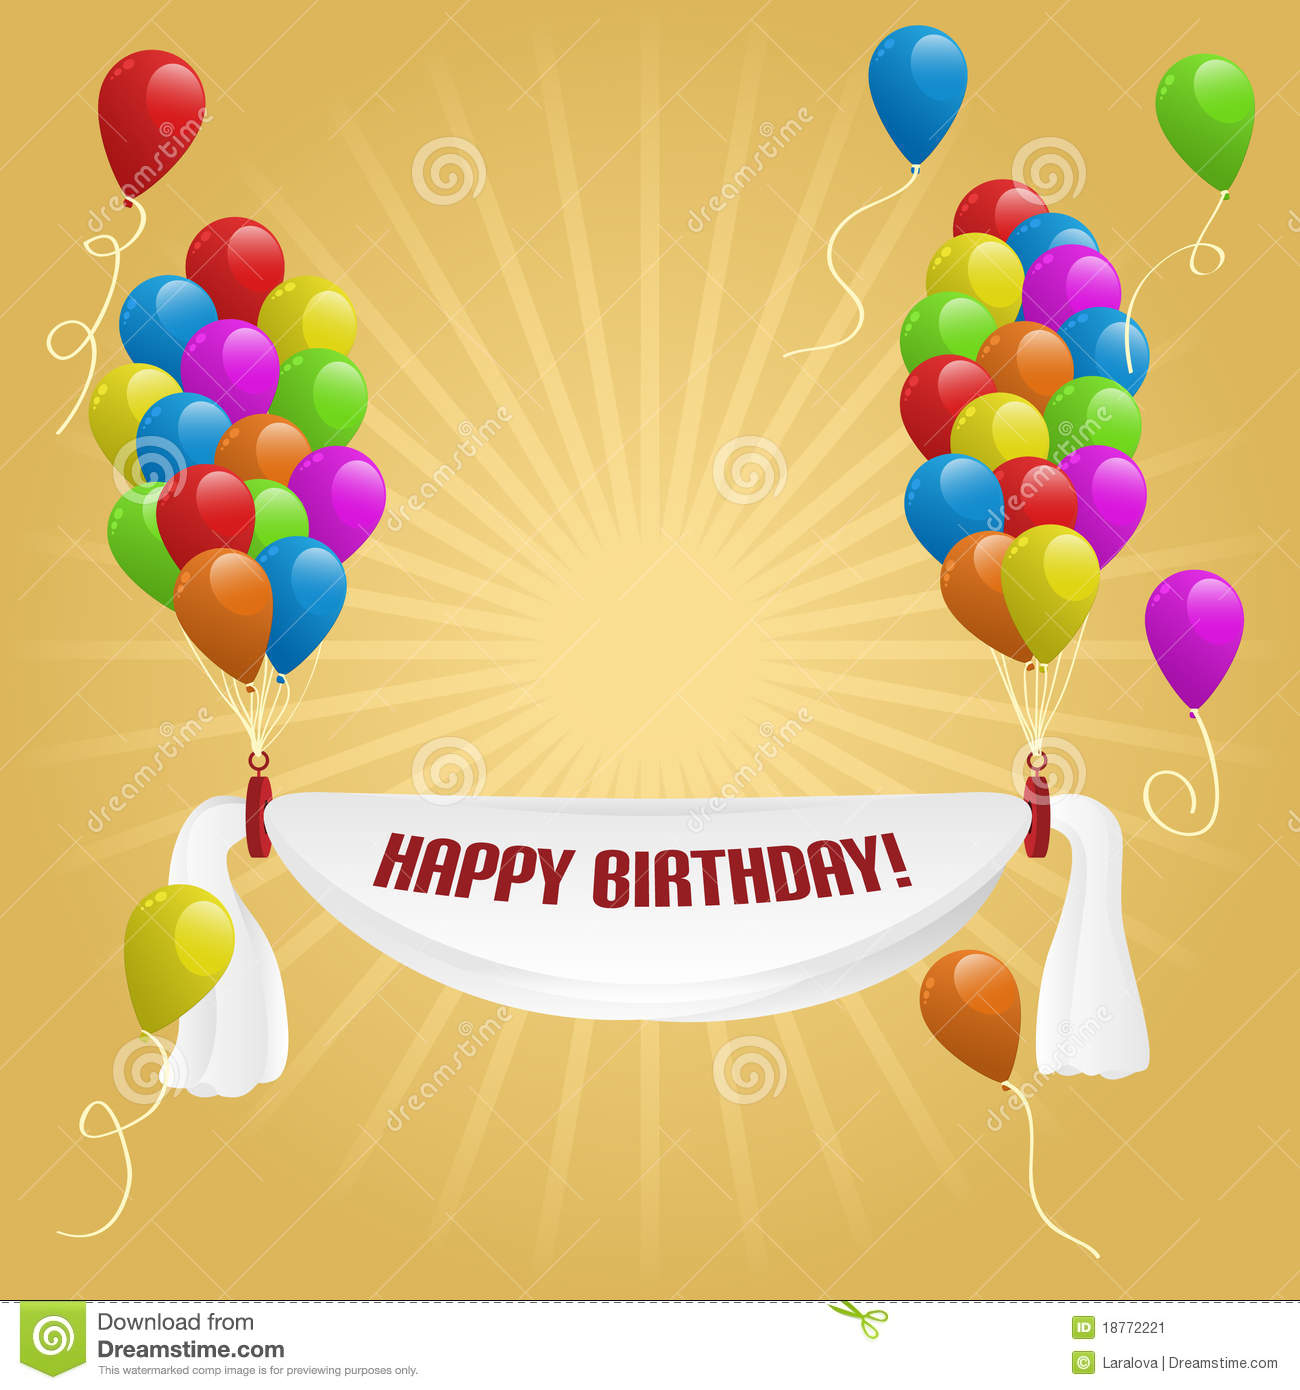 happy birthday banner with balloons stock image  image: 18772221